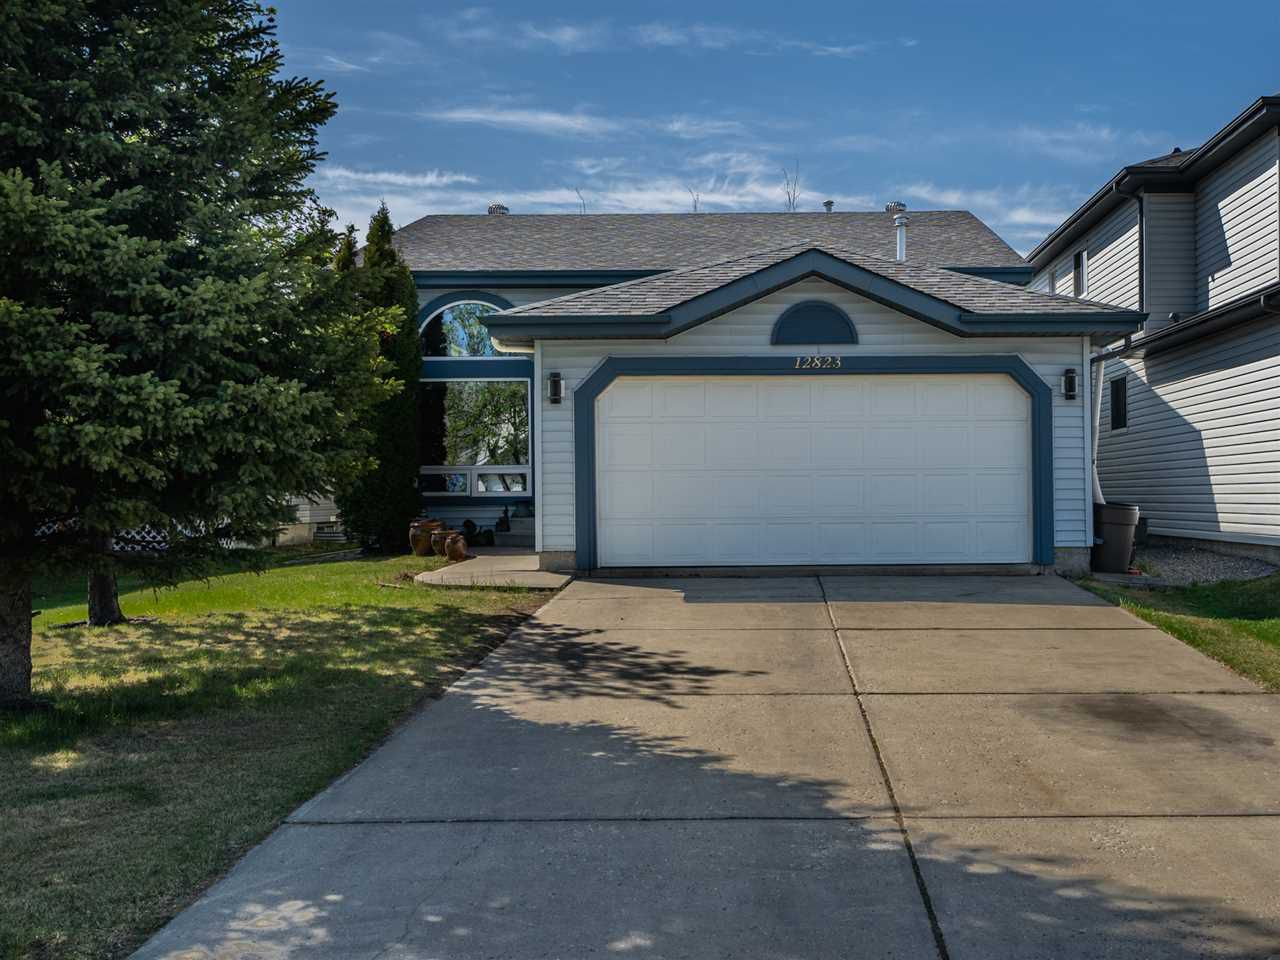 Main Photo: 12823 144 Avenue in Edmonton: Zone 27 House for sale : MLS®# E4157173